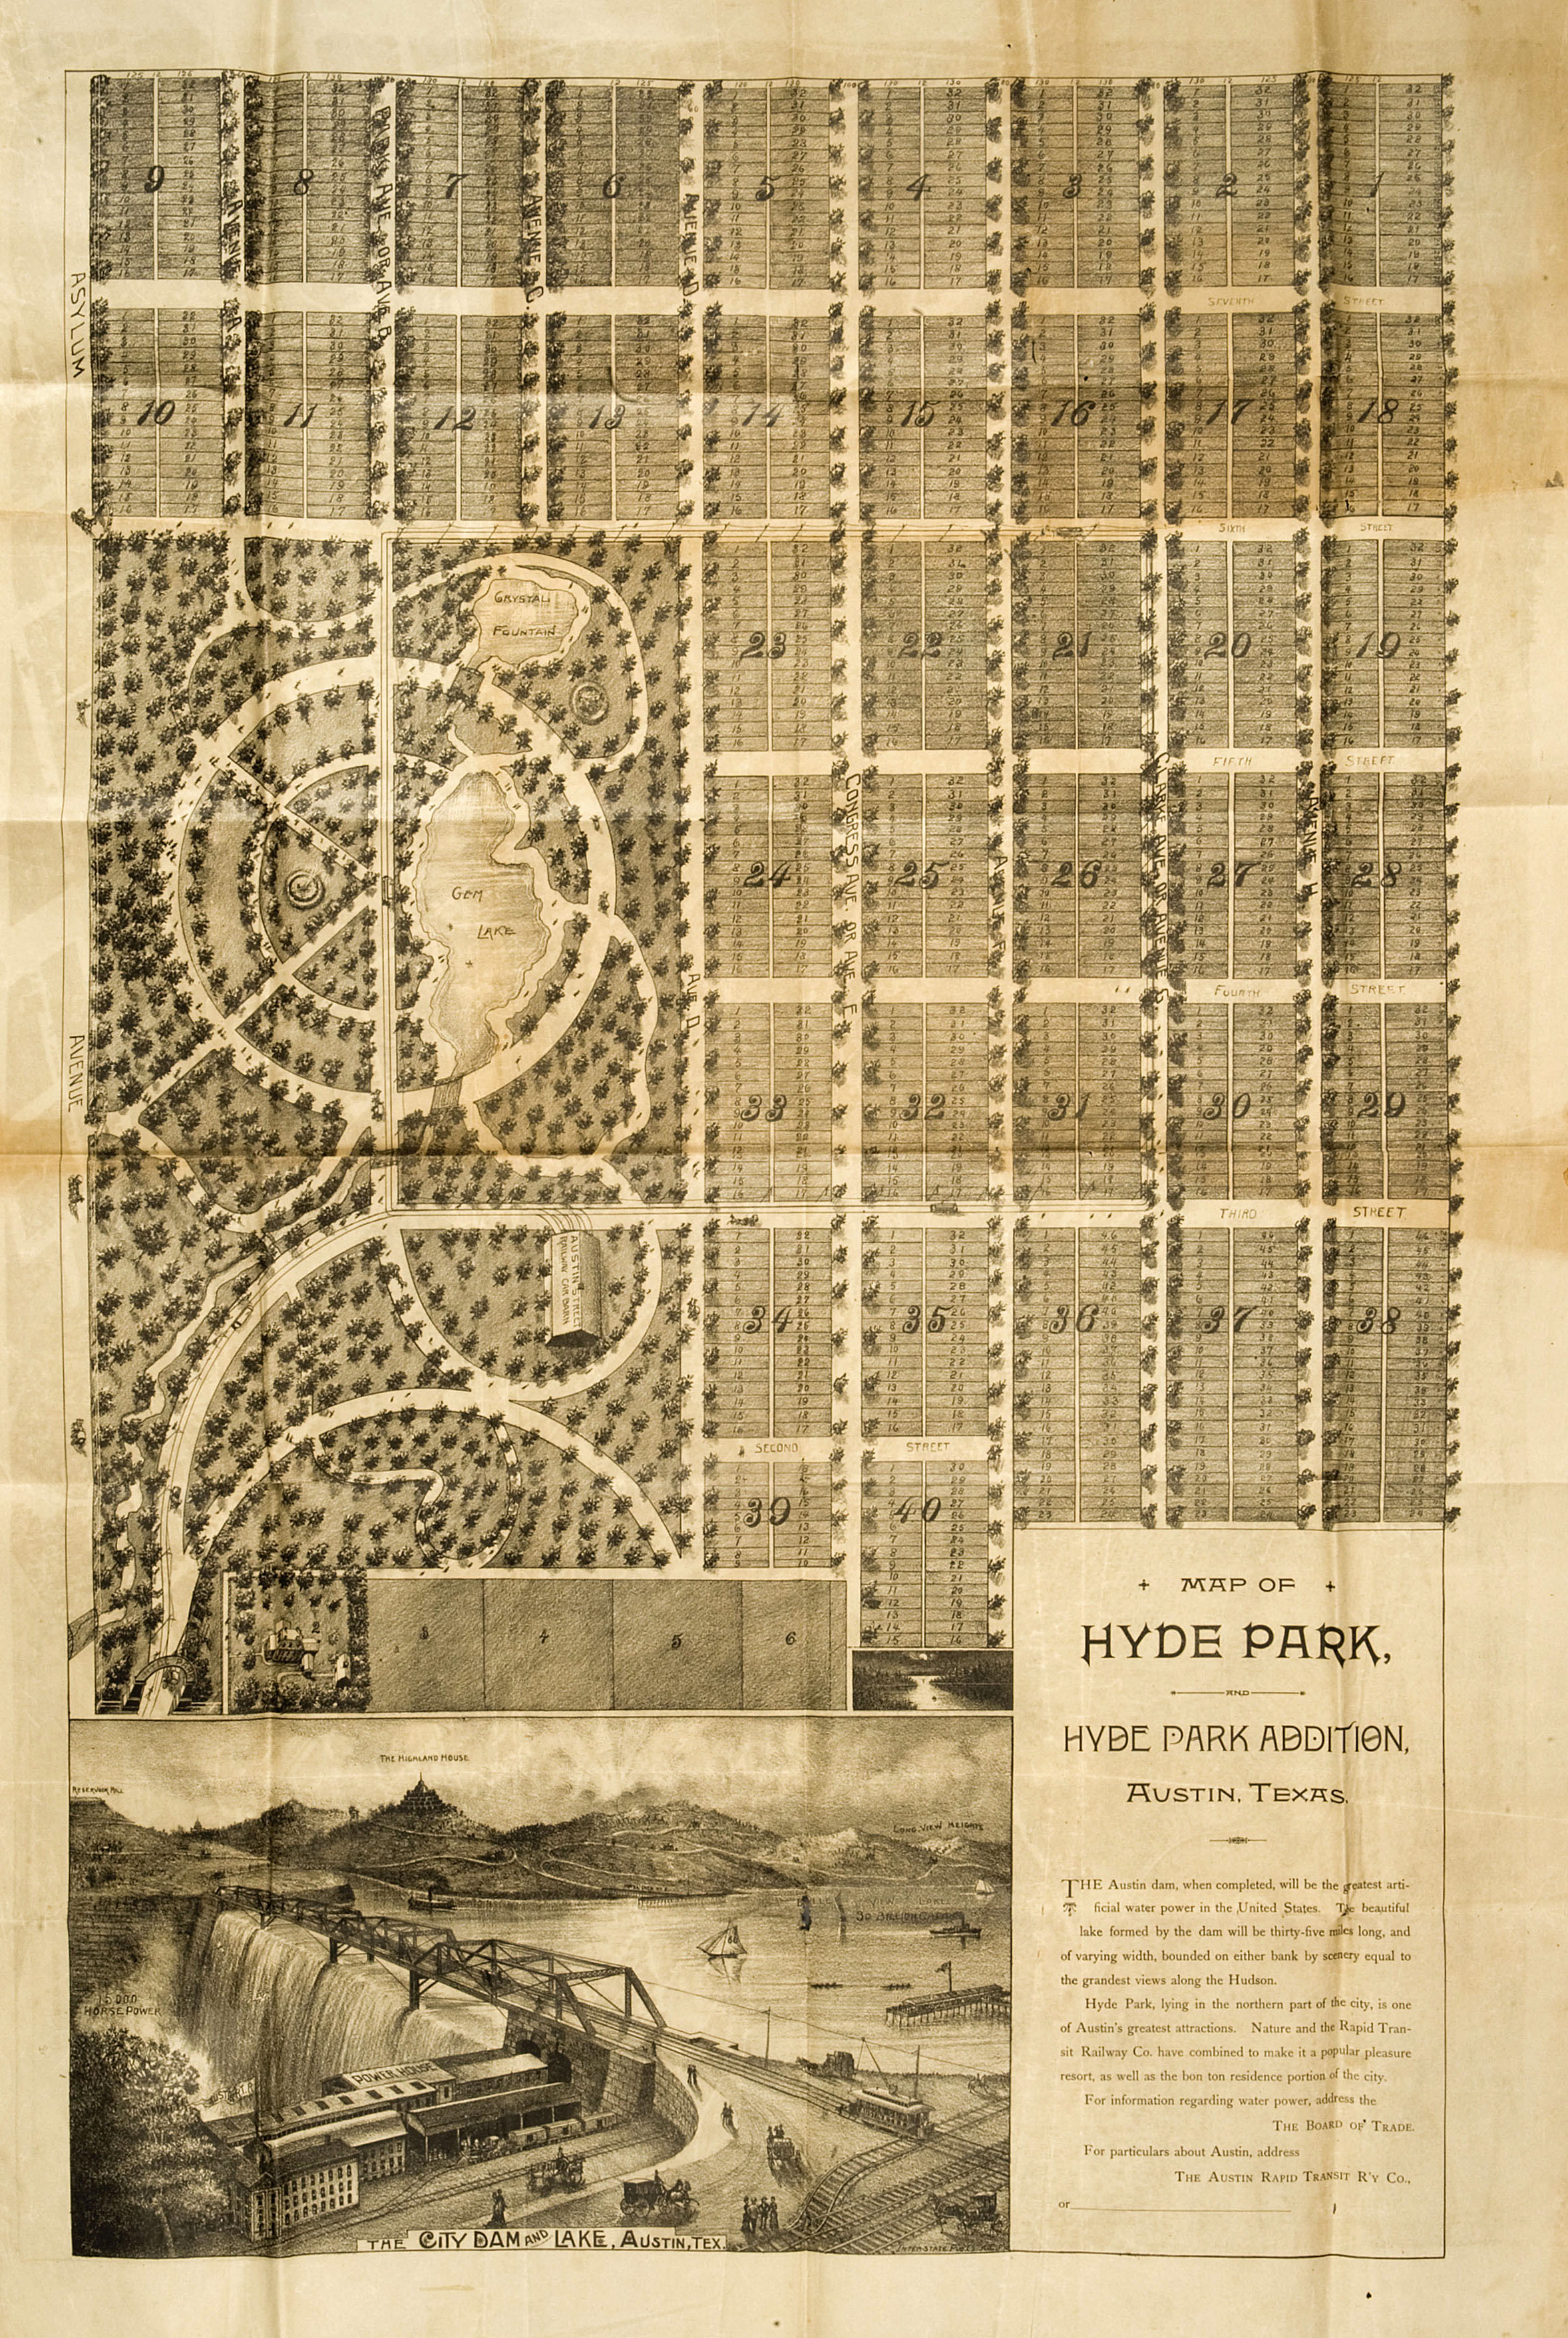 Texas Cities Historical Maps - Perry-Castañeda Map ... on old calgary maps, old orlando maps, old el paso county maps, old michigan maps, old oakland maps, old tallahassee maps, old florida maps, old minnesota maps, old bowling green maps, old tinley park maps, old pensacola maps, old green bay maps, old stockton maps, old raleigh maps, old tobin maps, old ohio maps, old texas maps, old honolulu maps, old annapolis maps, old chico maps,